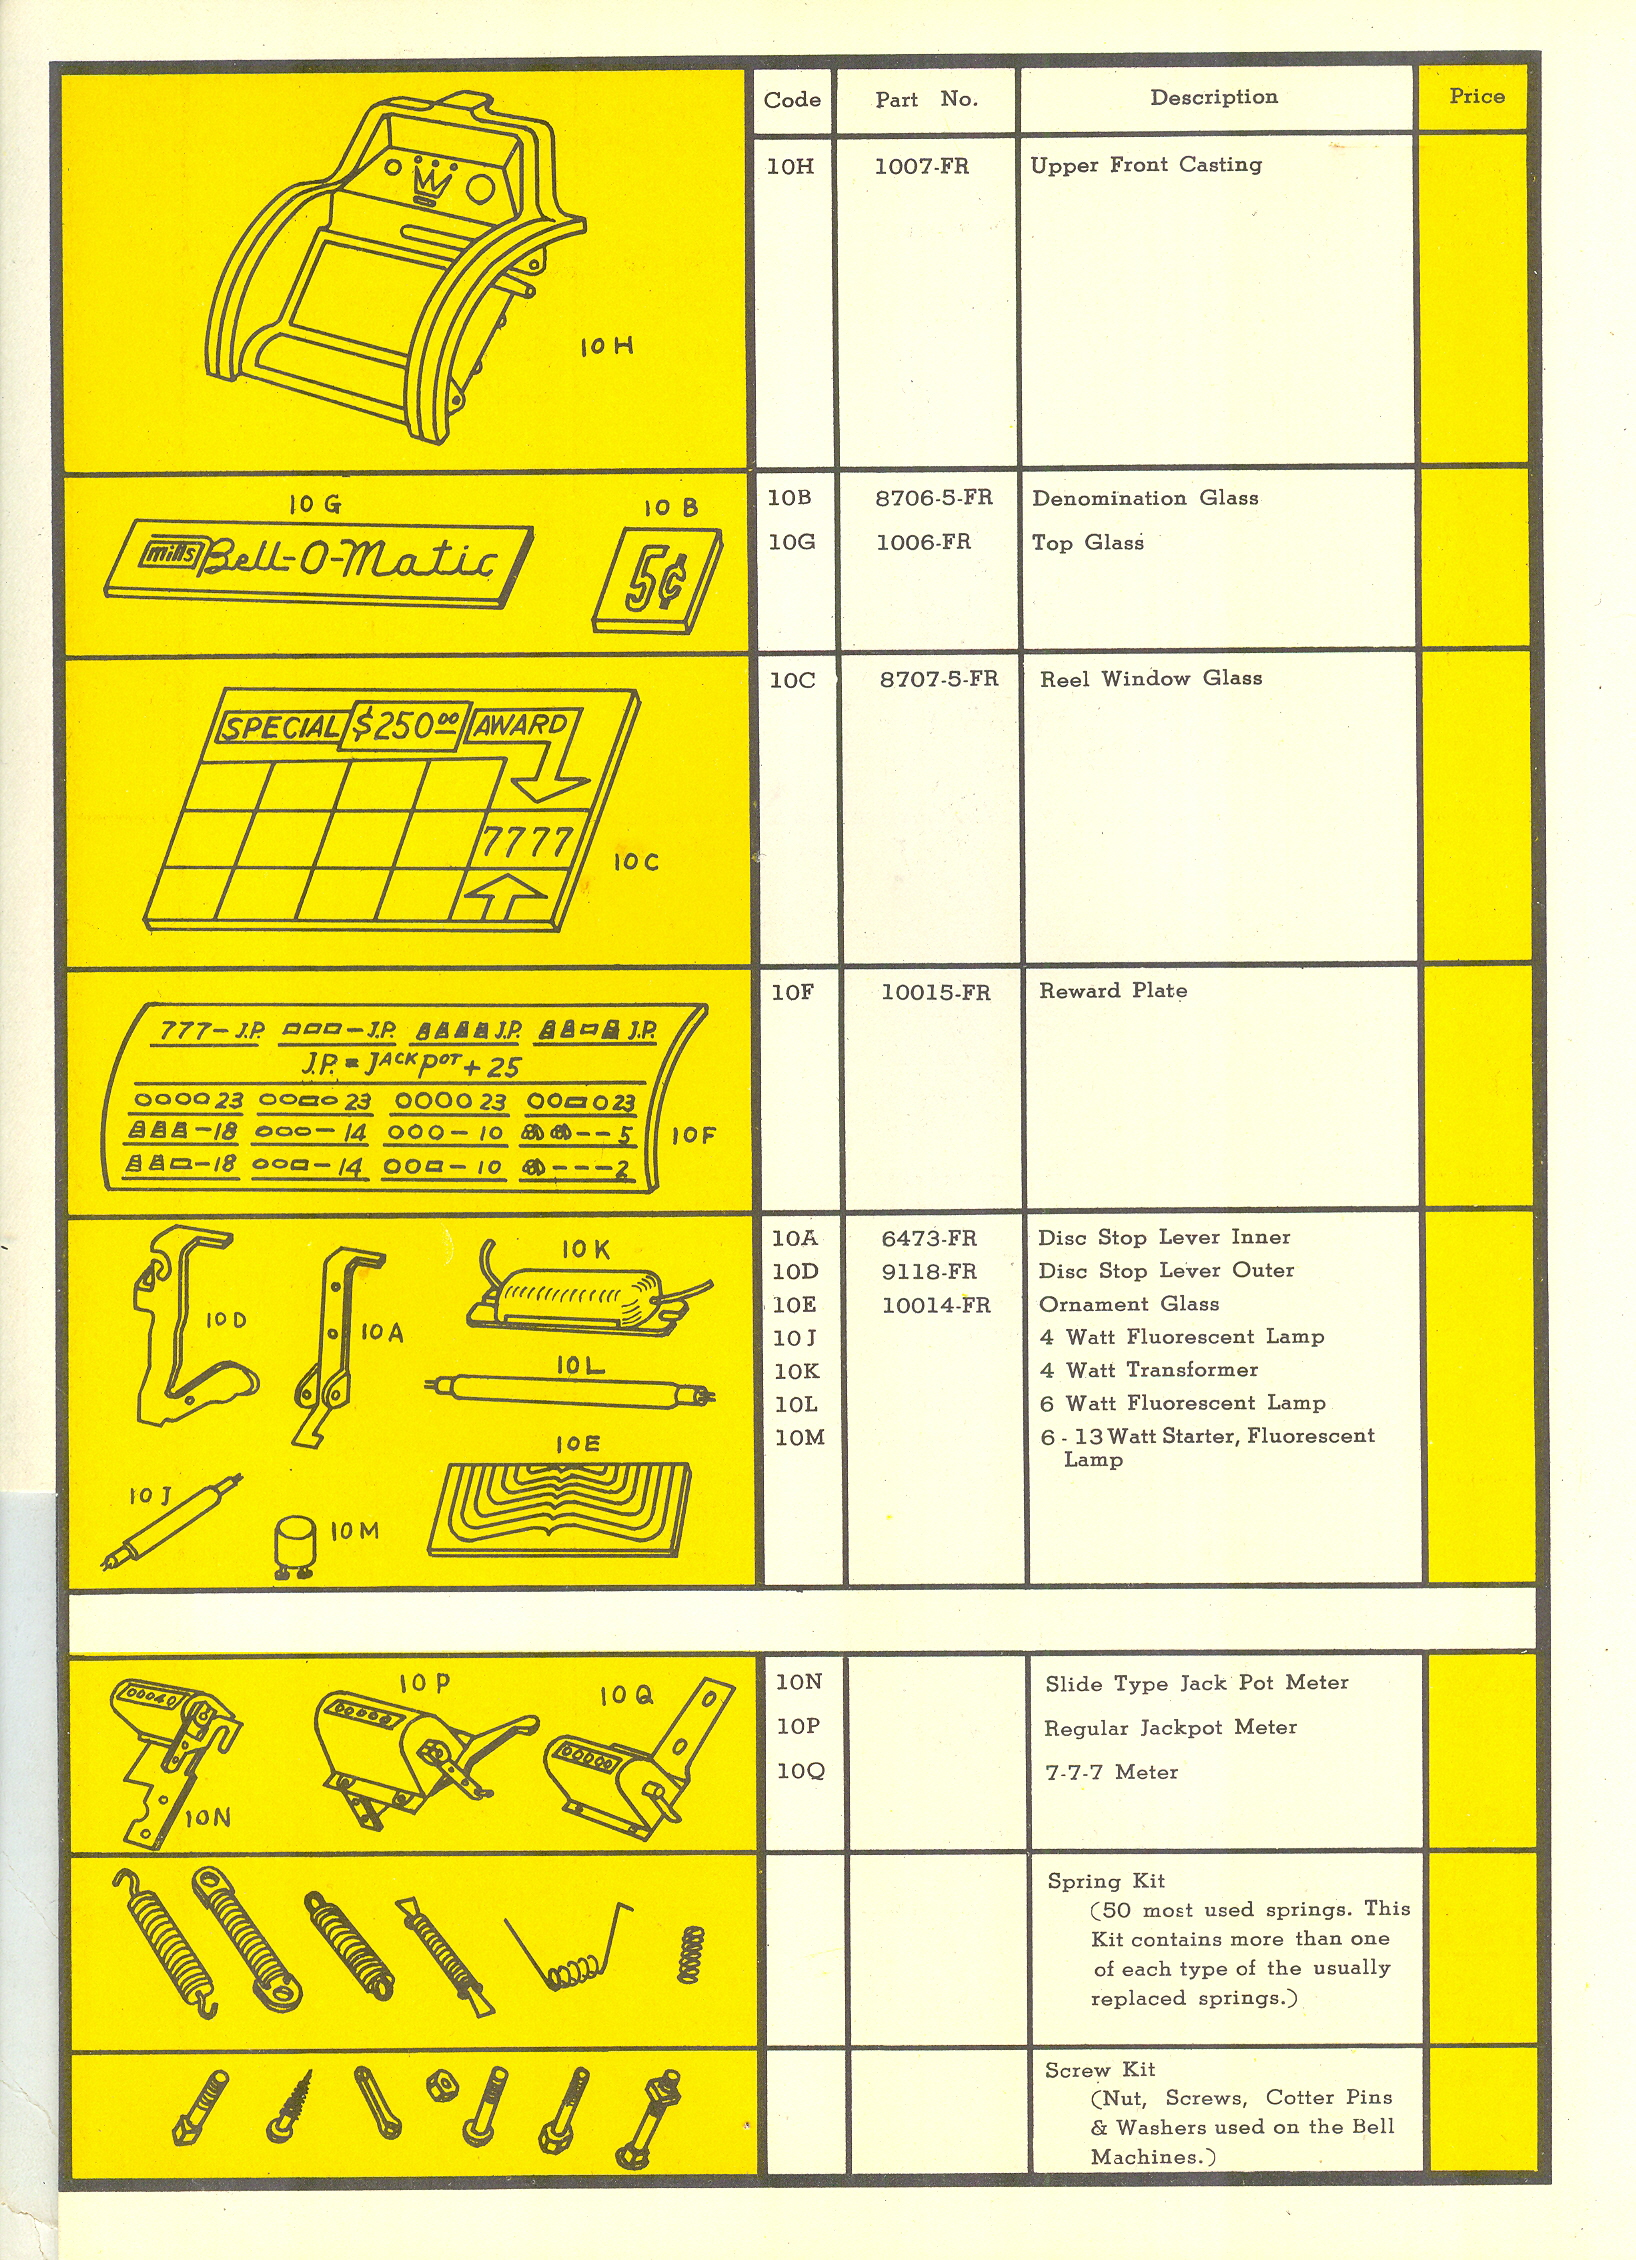 Service Games (Mills Parts Catalogue) -22.jpg